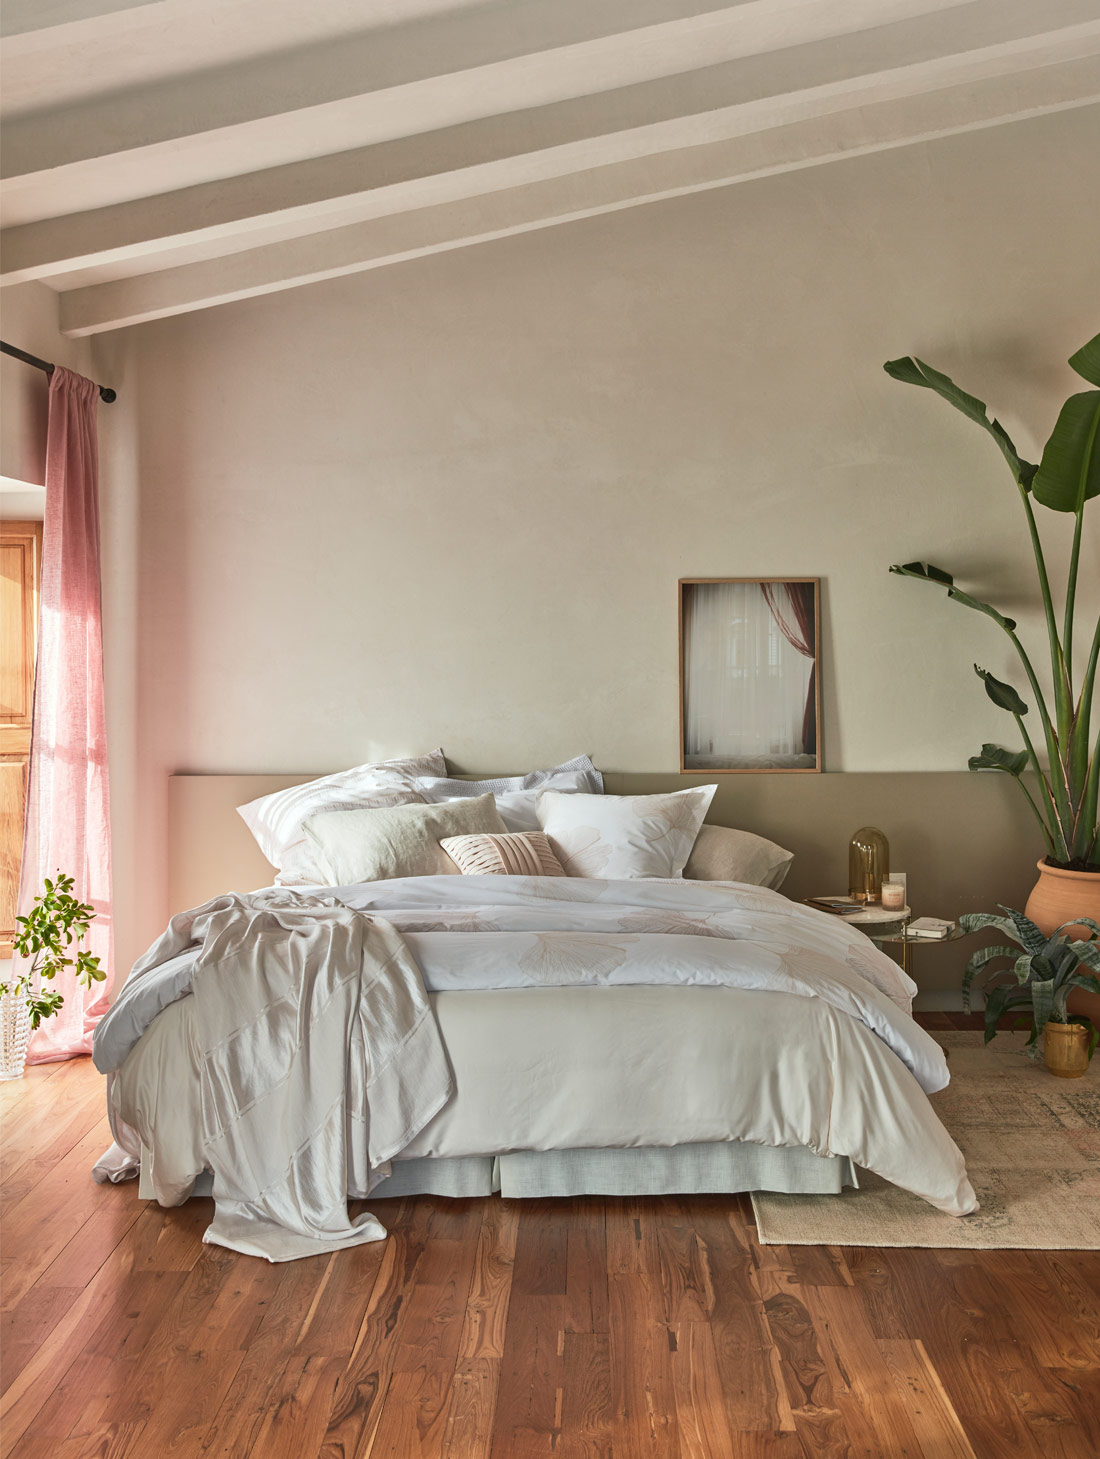 Zara Home Bedroom with plants and cozy bedding